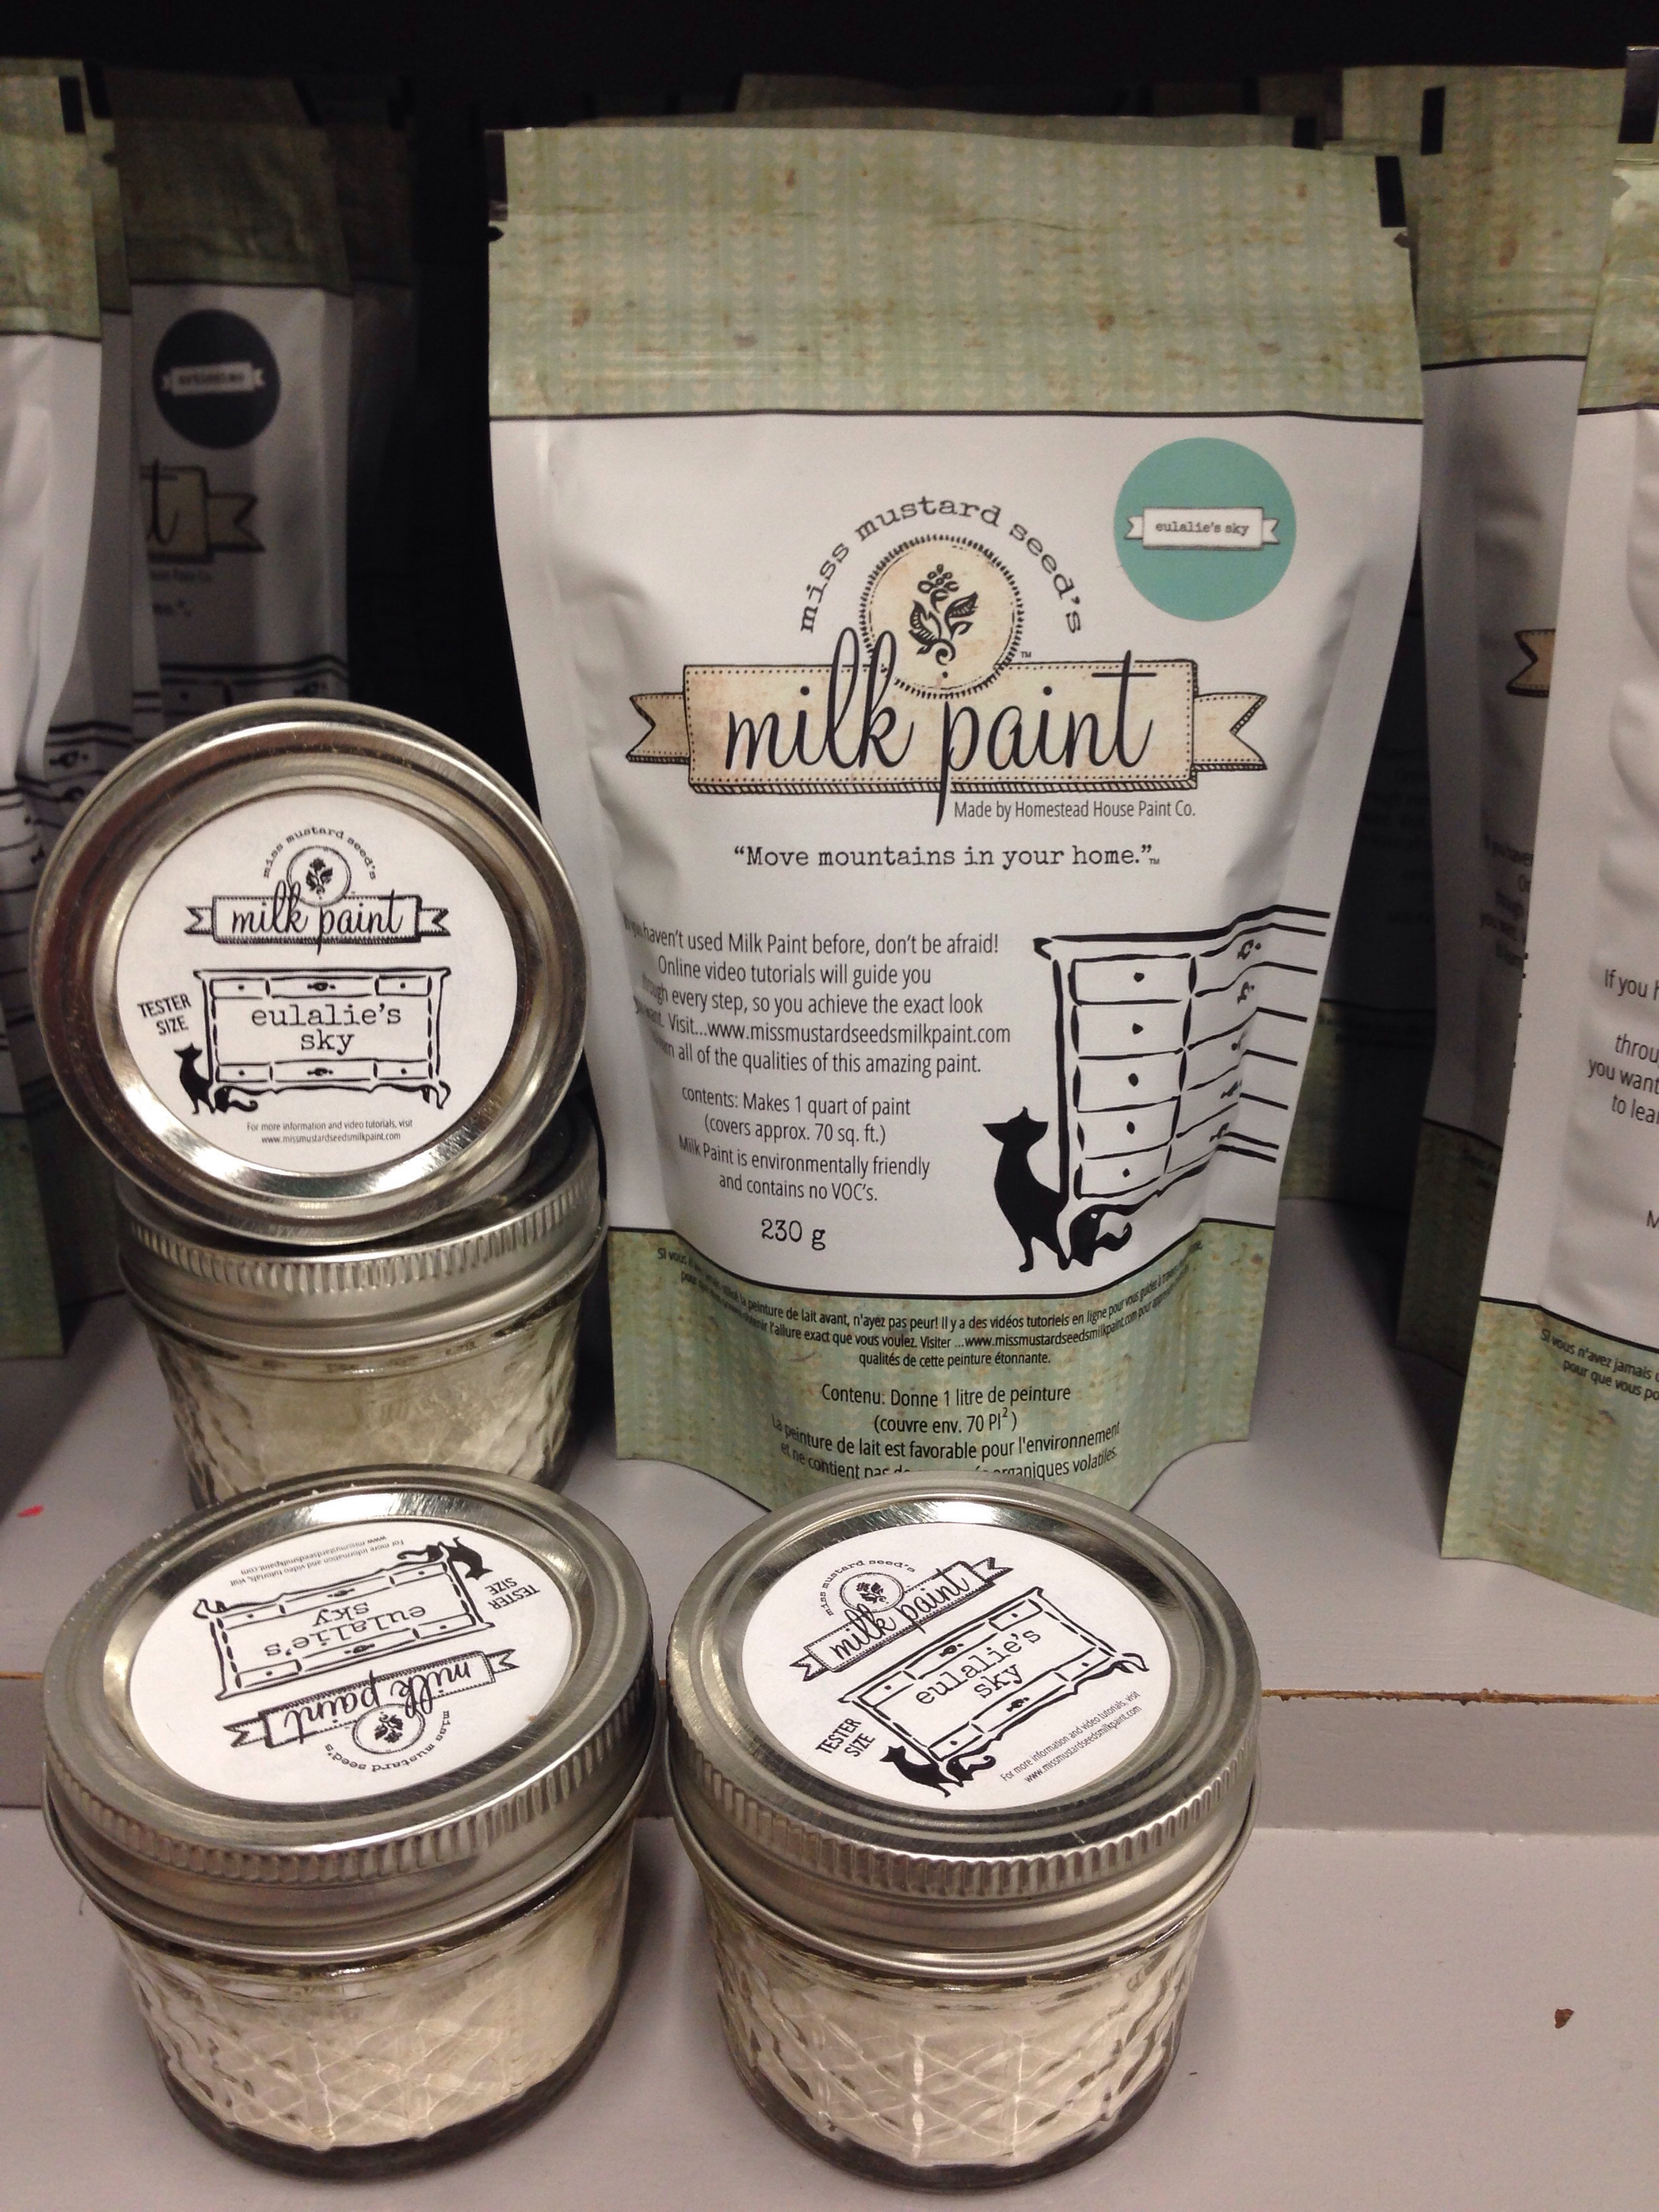 Miss Mustard Seed's Milk Paint | Eulalie's Sky | 1 quart and Tester jars |Carver Junk Company